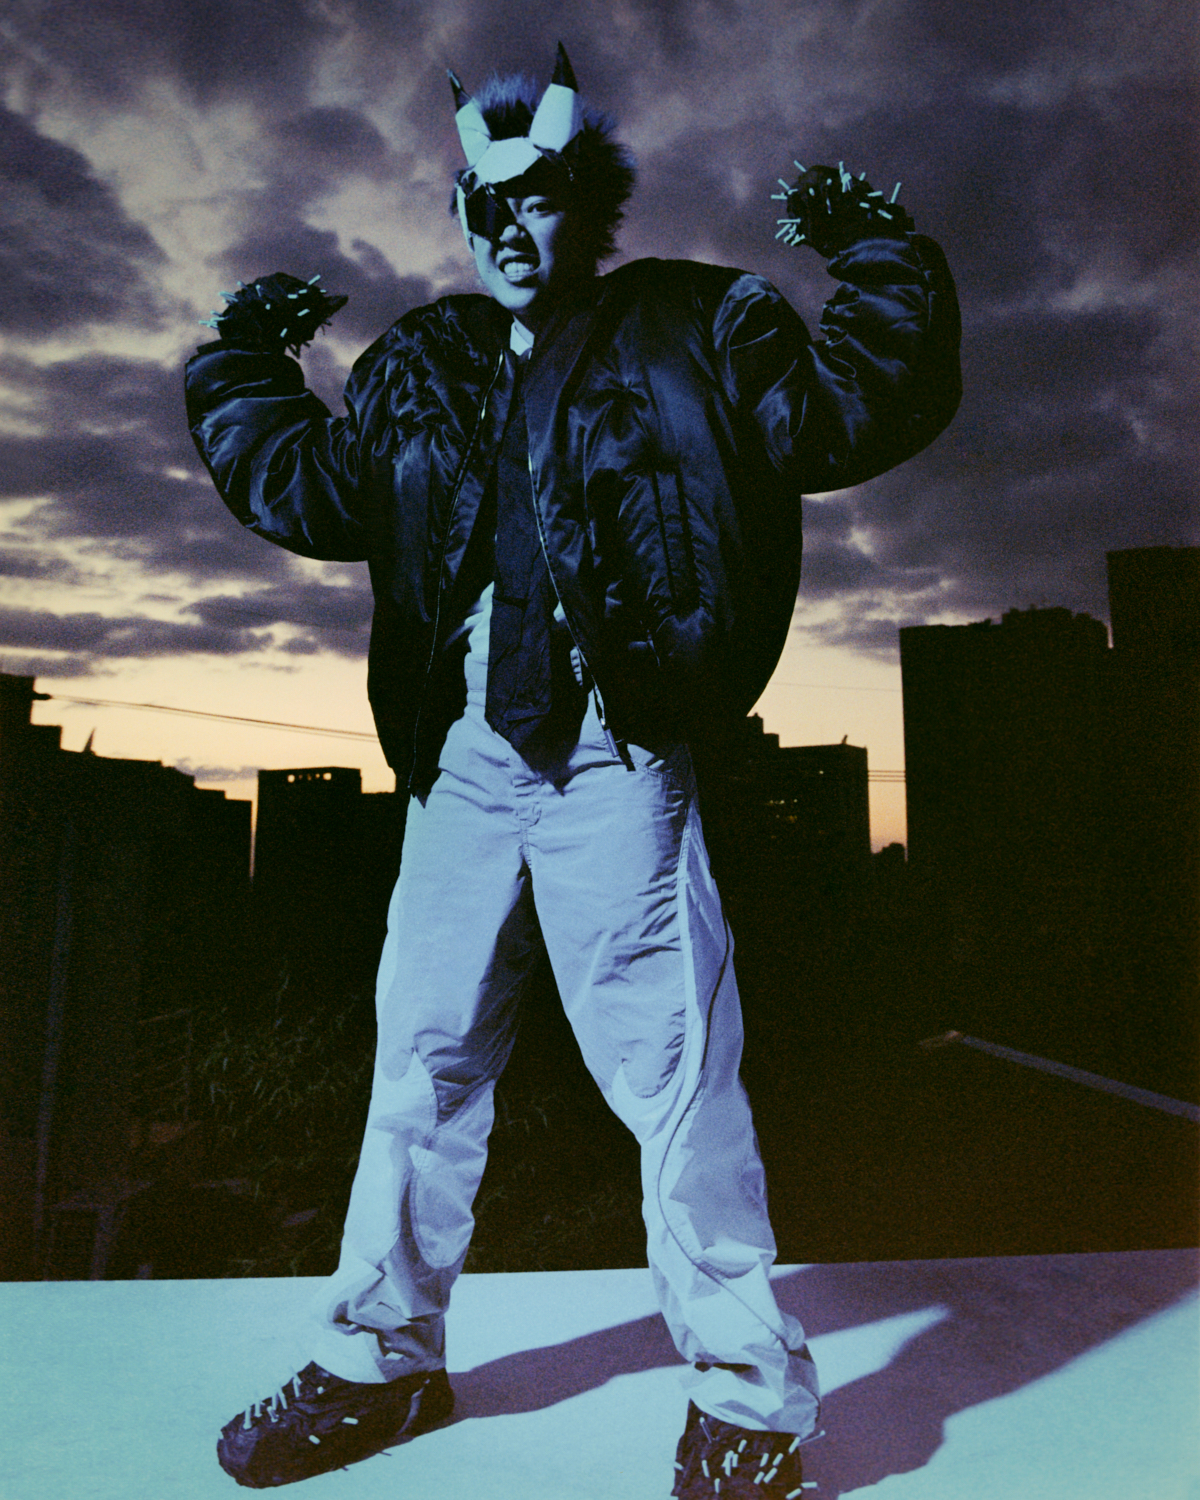 a photograph of a person wearing an eye patch, devil horns and a bomber jacket, standing on a roof at night, flexing their muscles